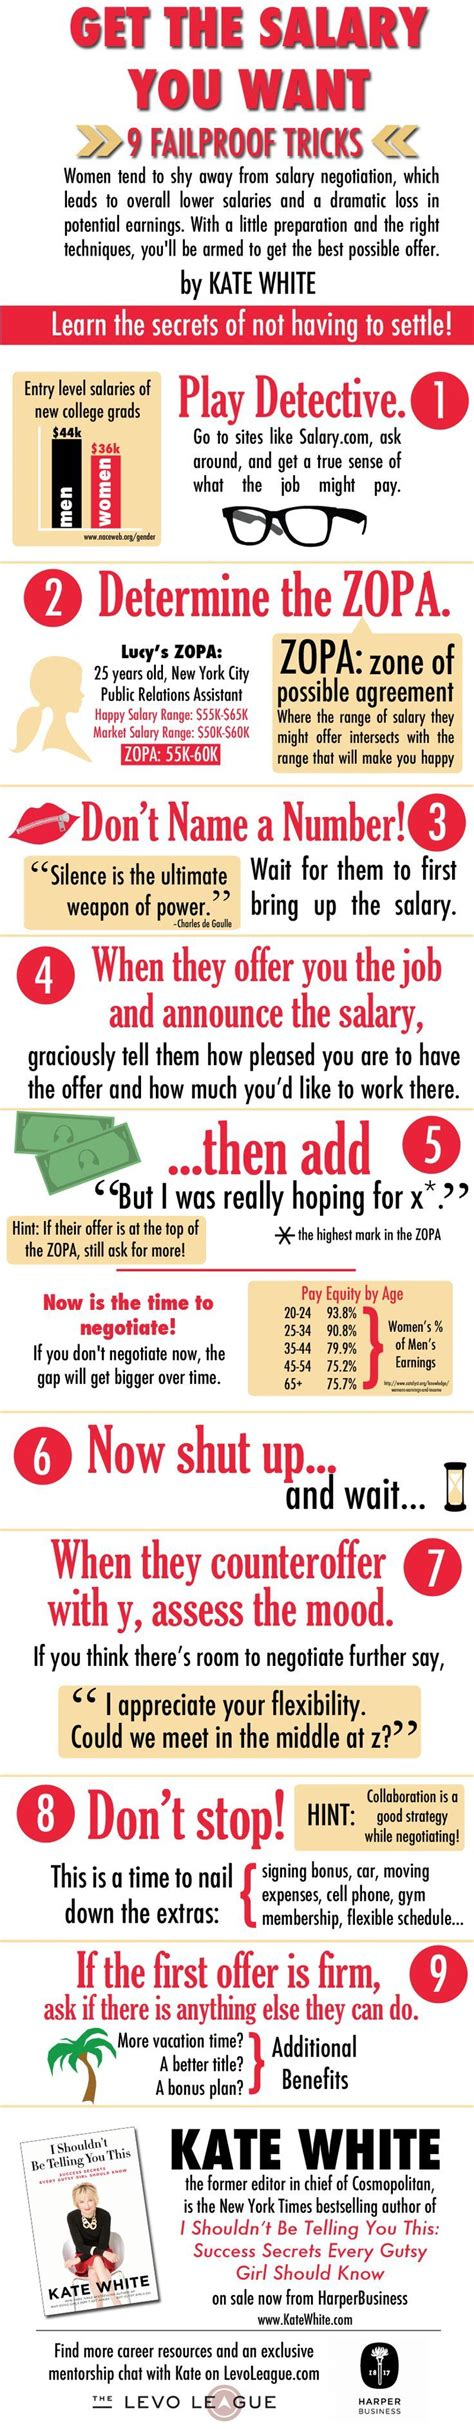 career advice find a job salary trends wall street 76 best images about 2015 job market trends on pinterest